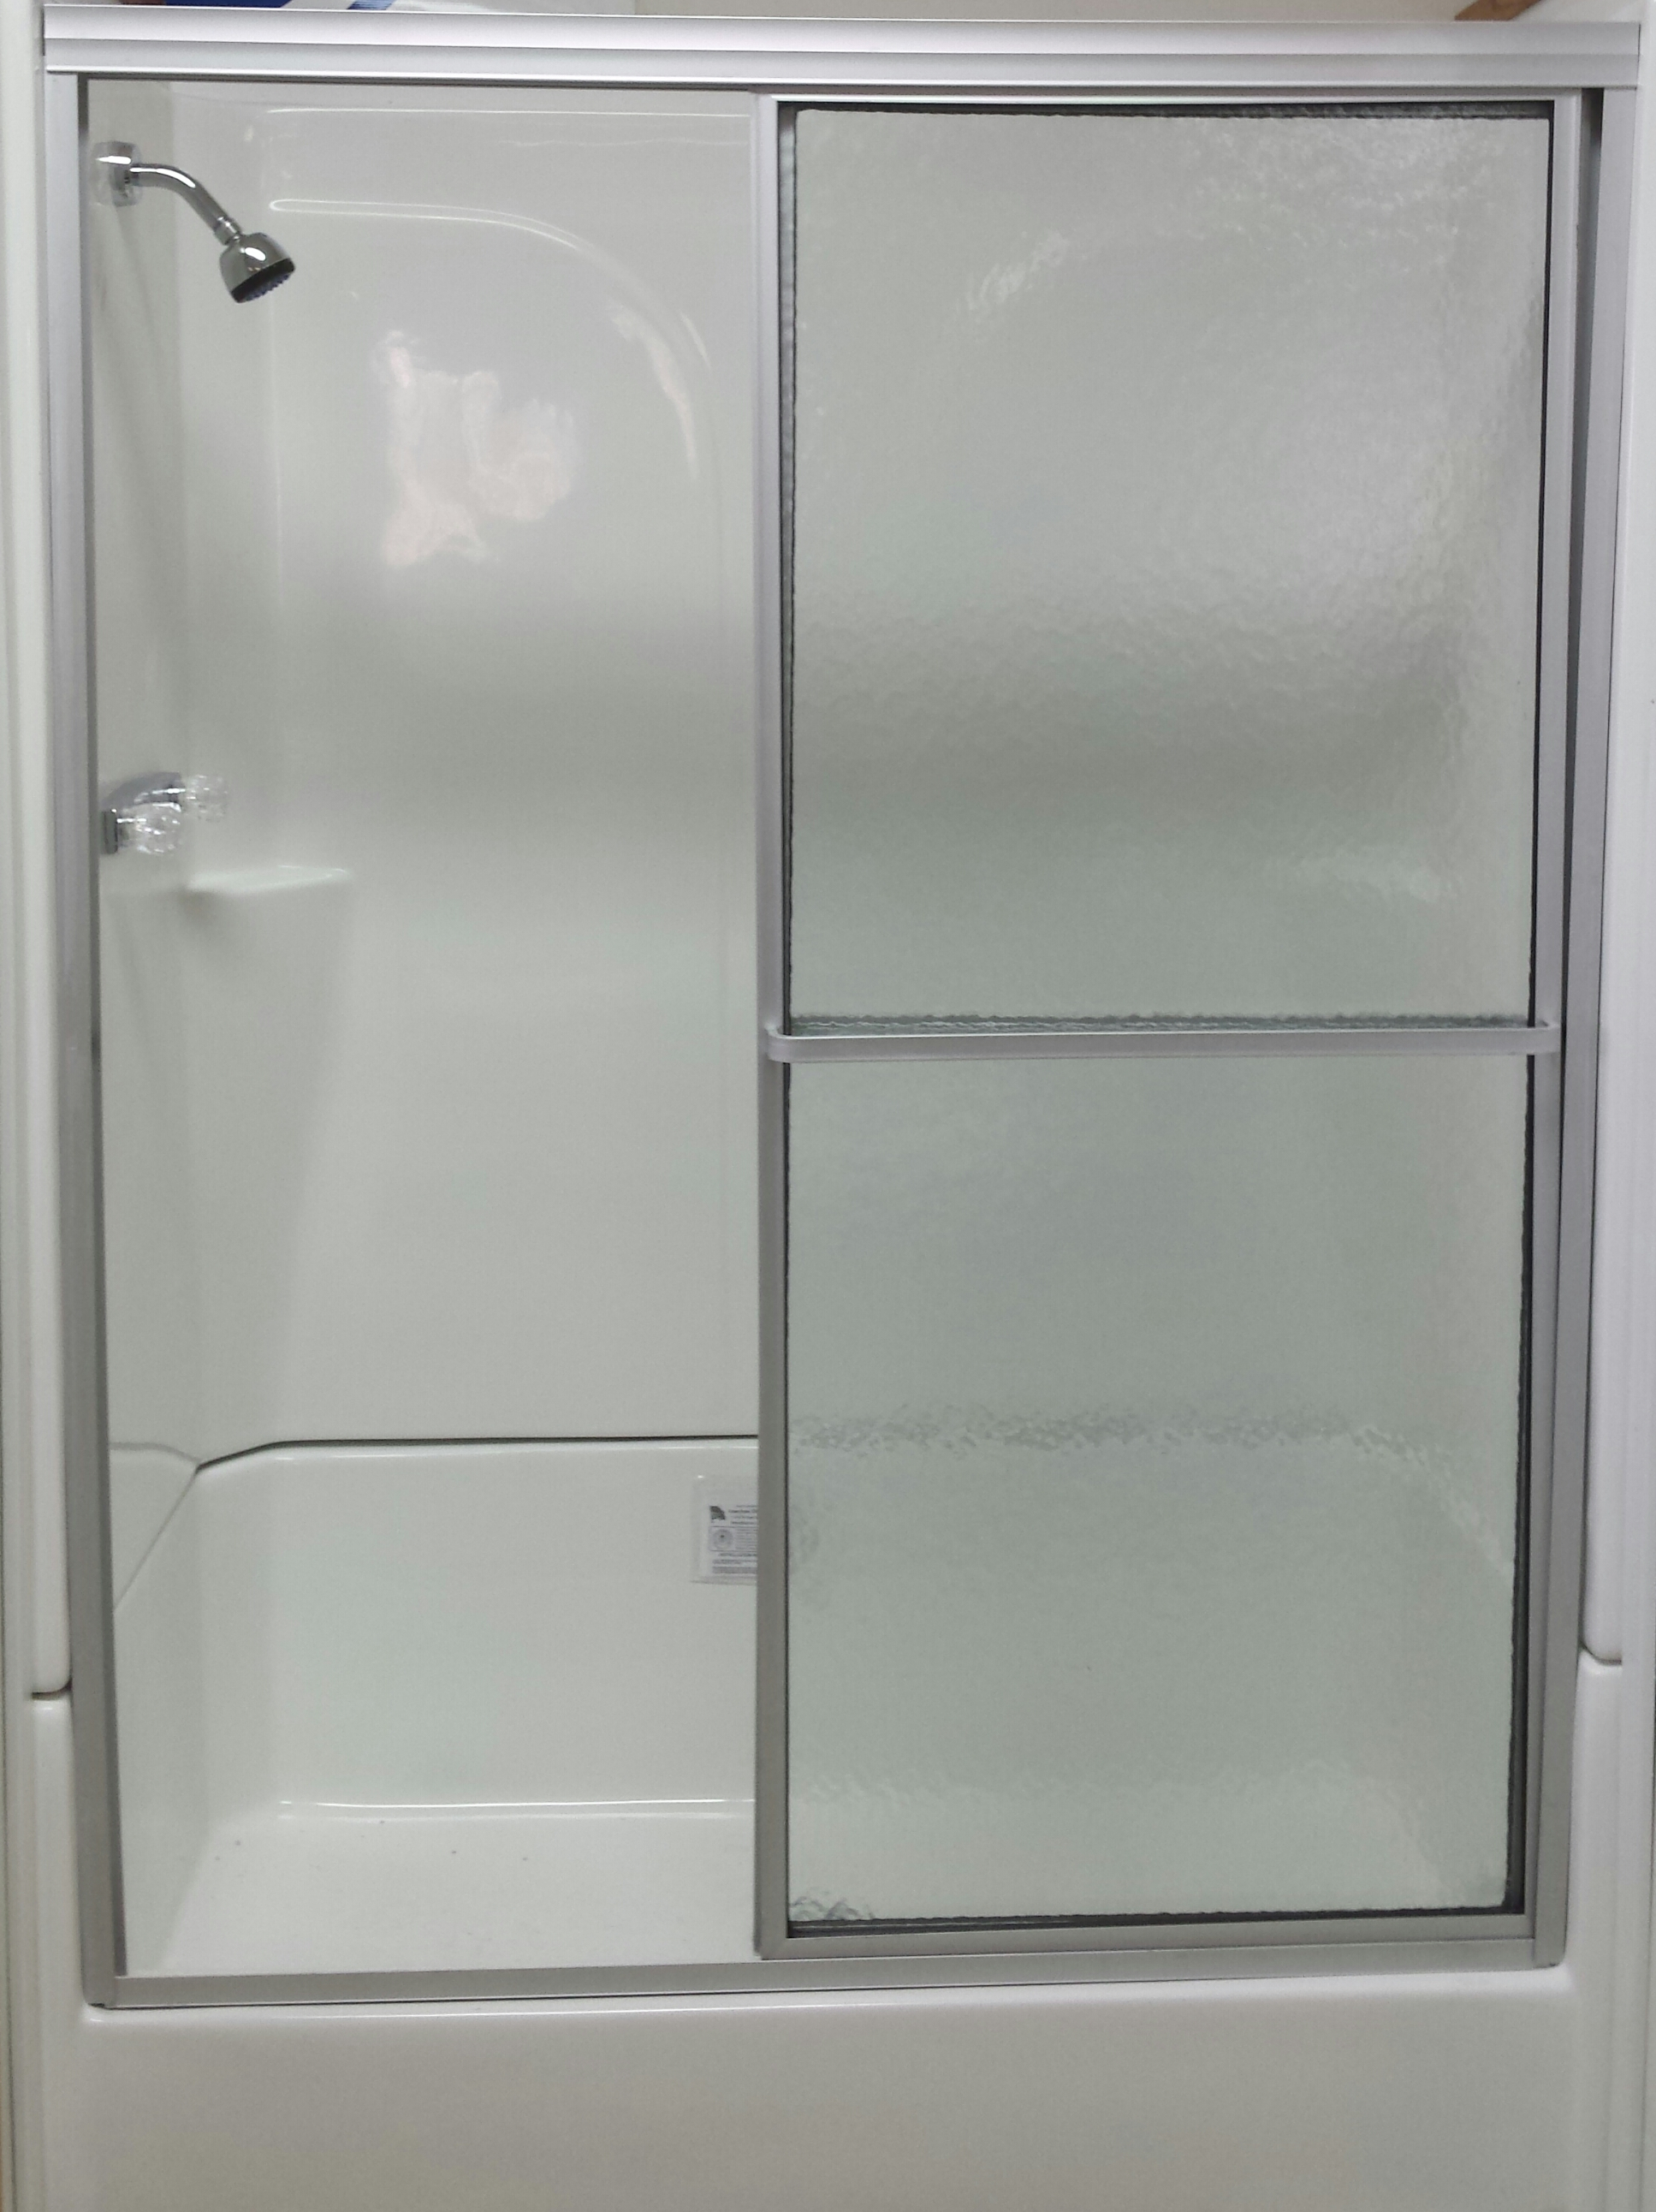 FIBERGLASS SHOWER BASE w/ SURROUND AND DOOR - Royal Durham Supply